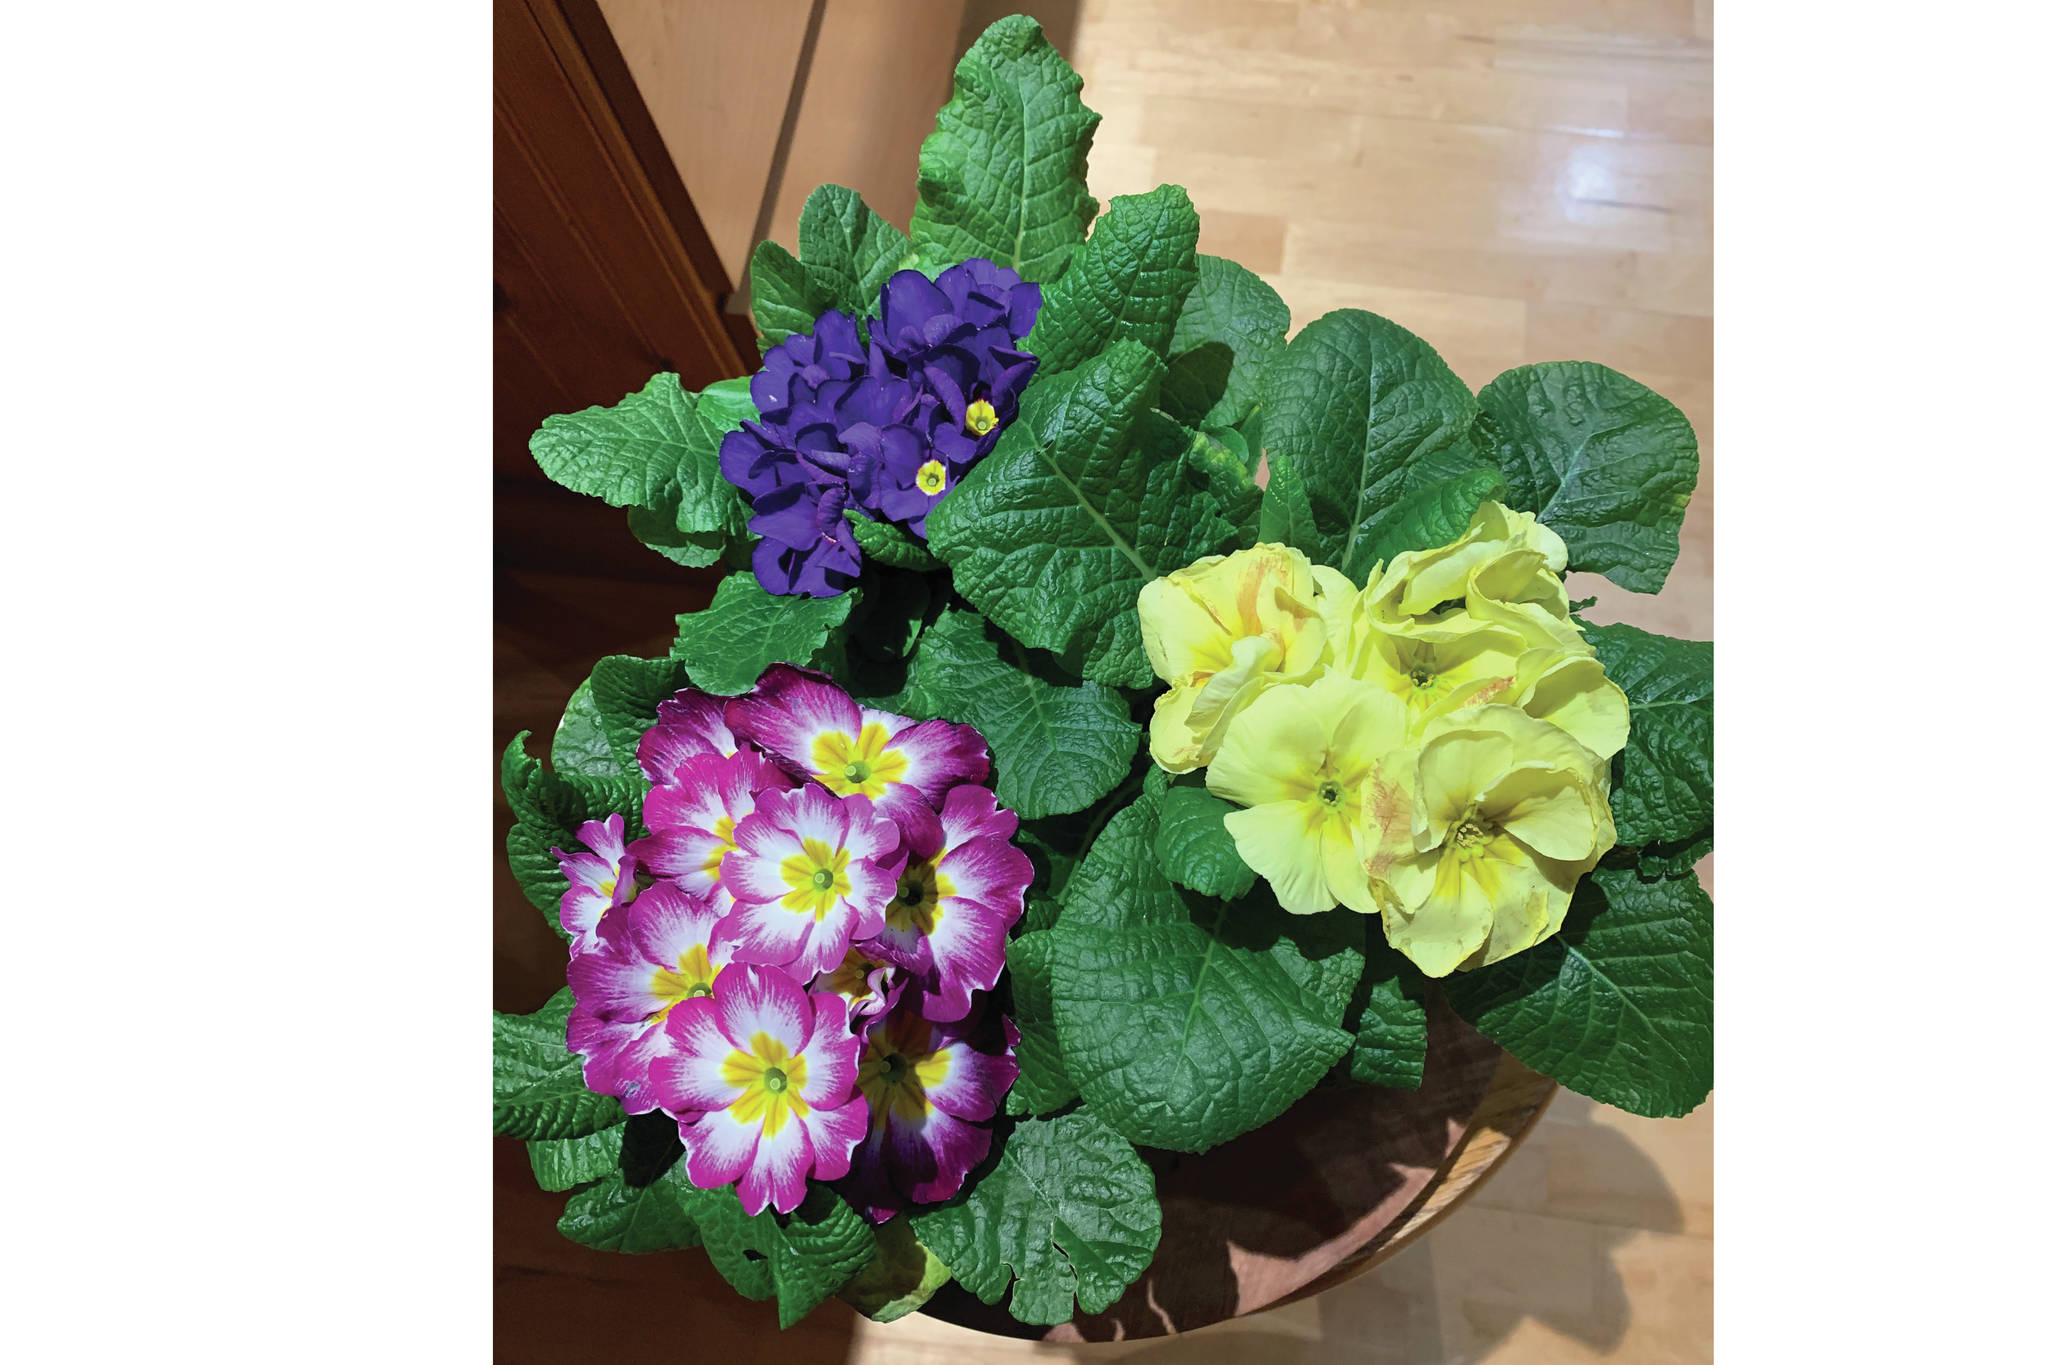 """These primulas were not to be resisted,"" the Kachemak Gardener says of these flowers blooming in her Homer, Alaska, home on Feb. 2, 2021. ""They will enhance the dining room table and then, come spring, find a home in the East Garden."" (Photo by Rosemary Fitzpatrick)"